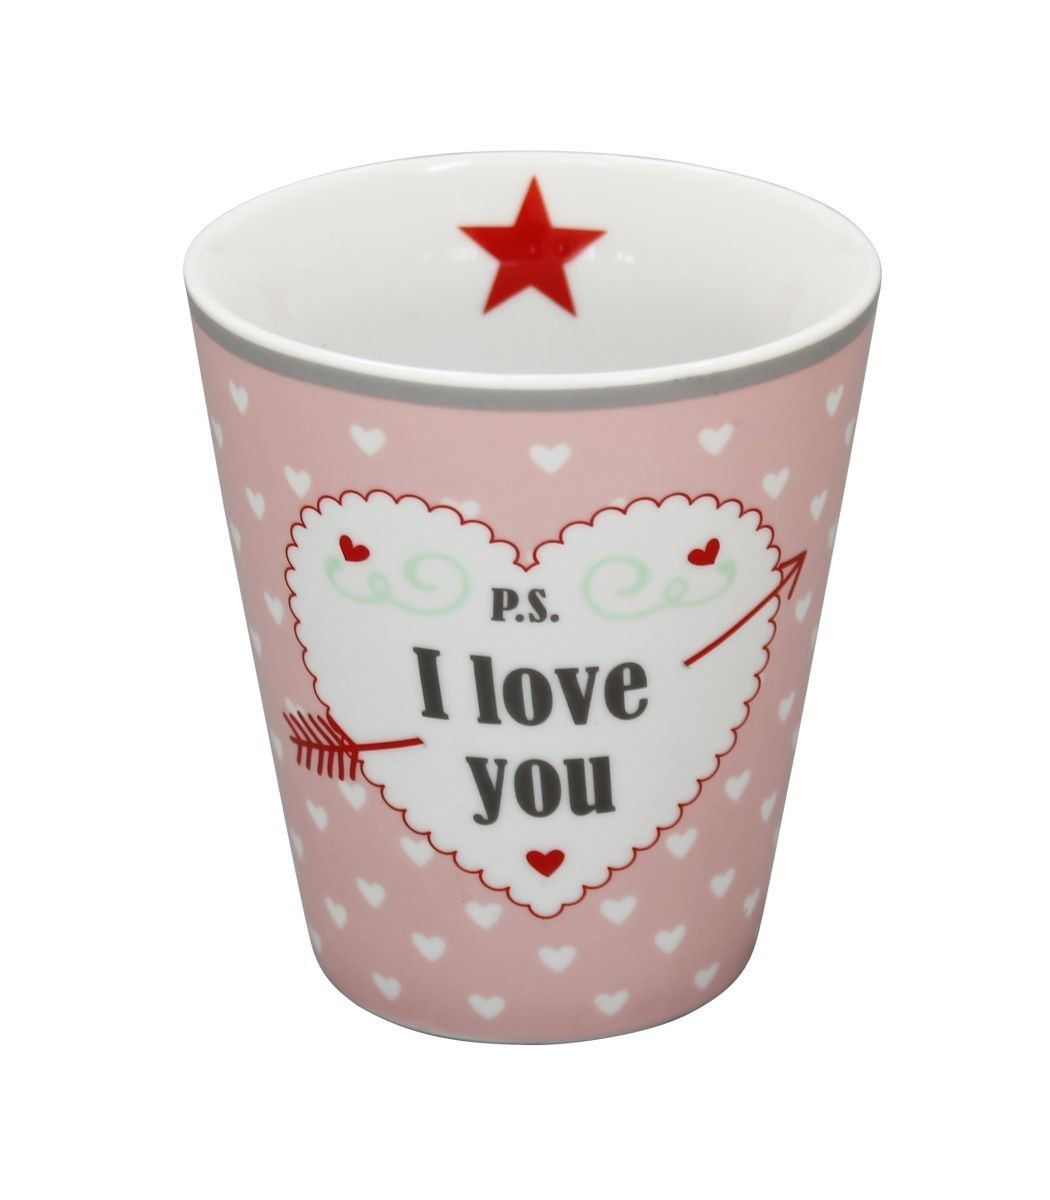 Krasilnikoff Happy Tasse P.S. I Love You KRAS-HM70